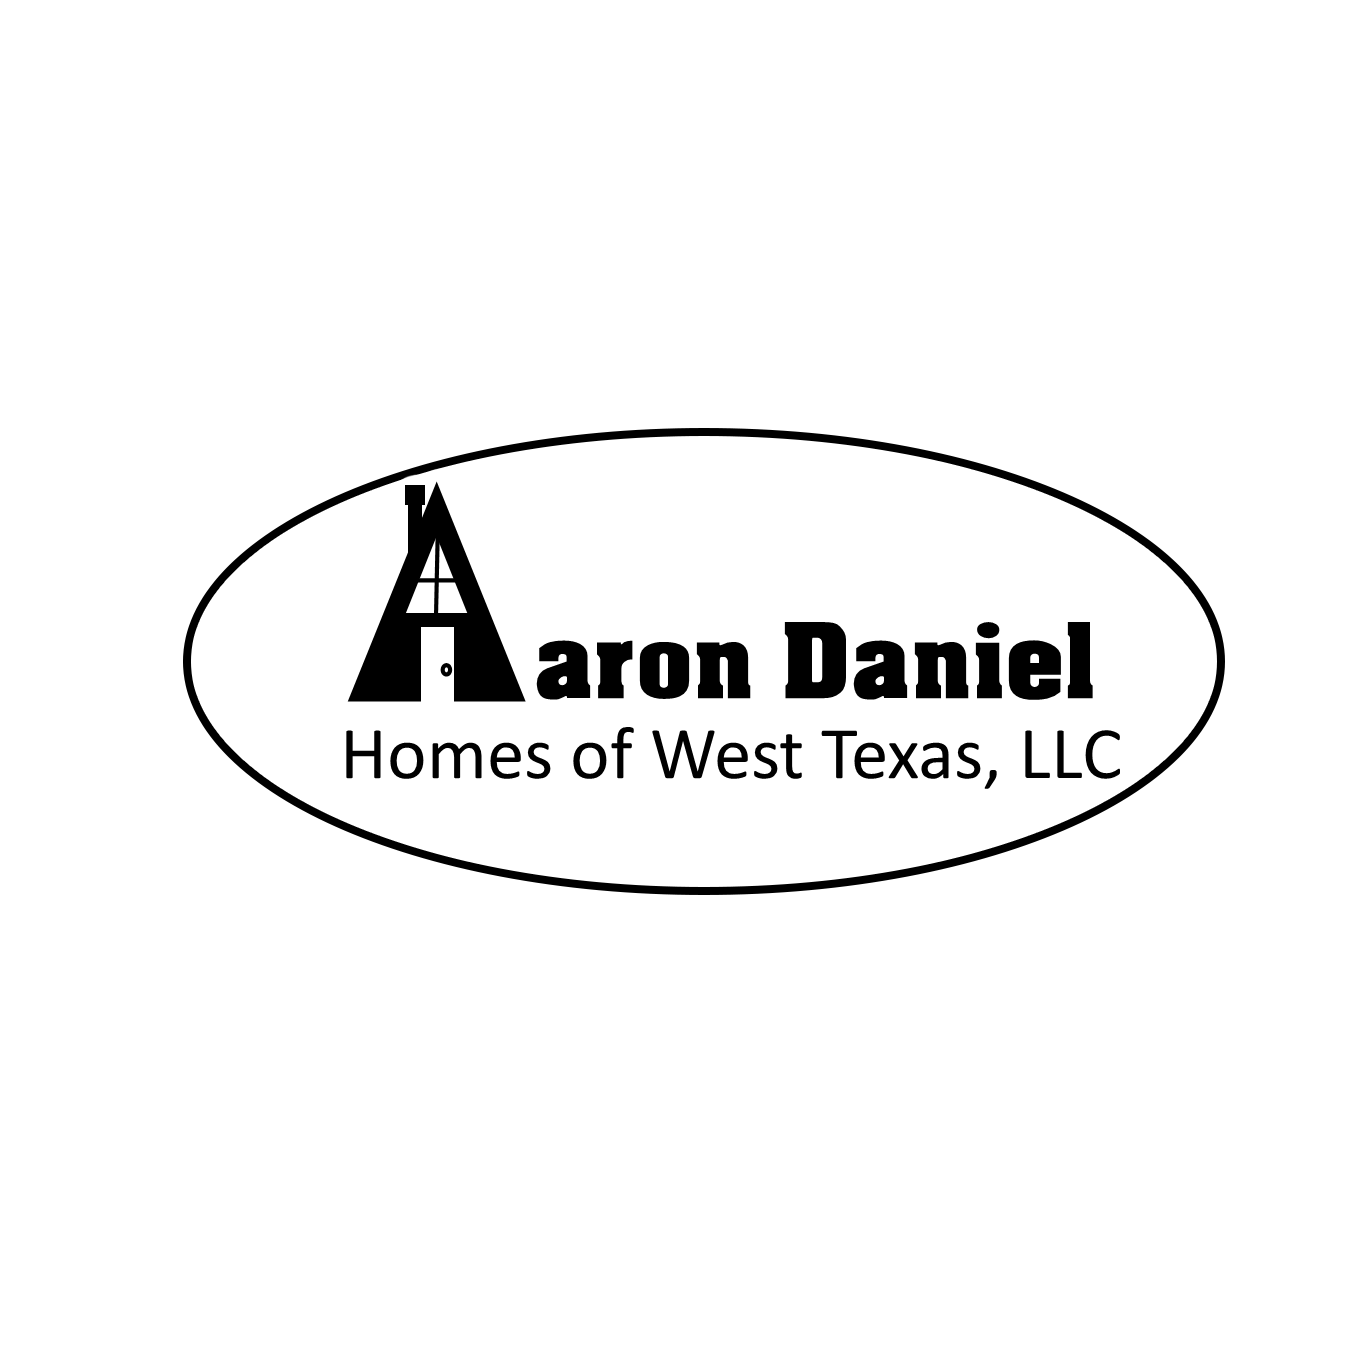 Aaron Daniel Homes of West Texas LLC - Lubbock, TX - Landscape Architects & Design